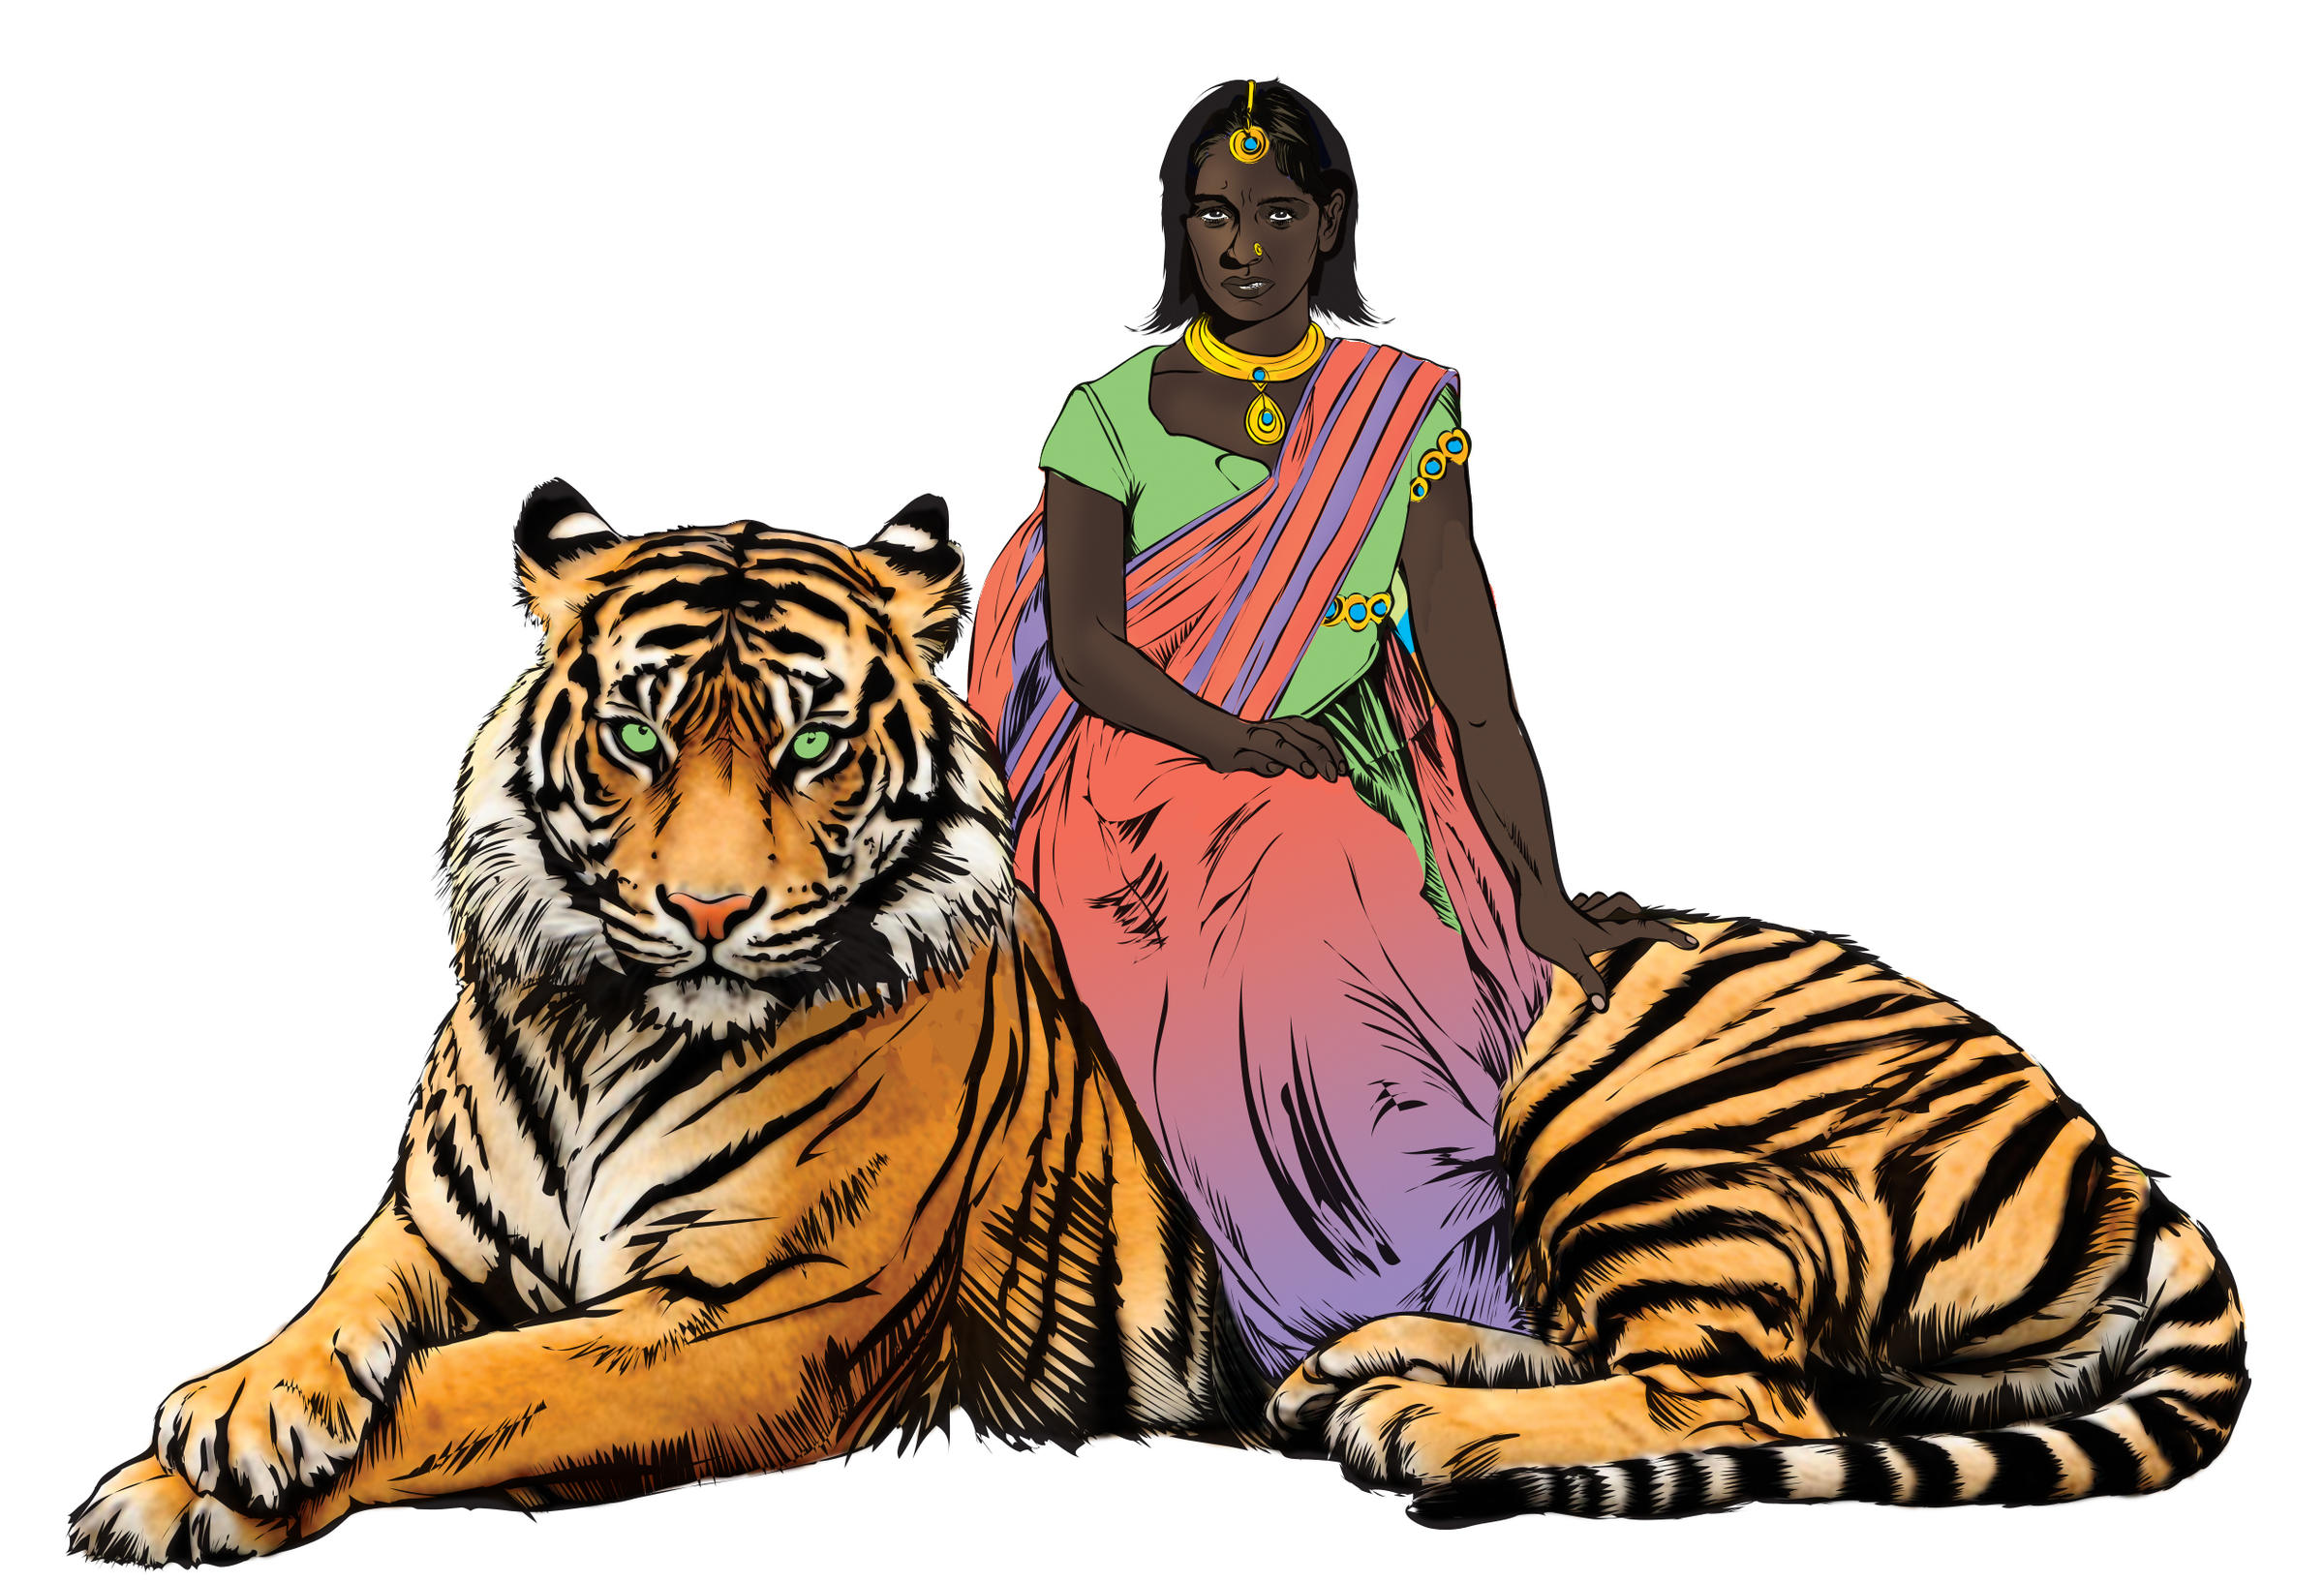 india 39 s new comic book hero fights rape rides on the back of a tiger kbia. Black Bedroom Furniture Sets. Home Design Ideas